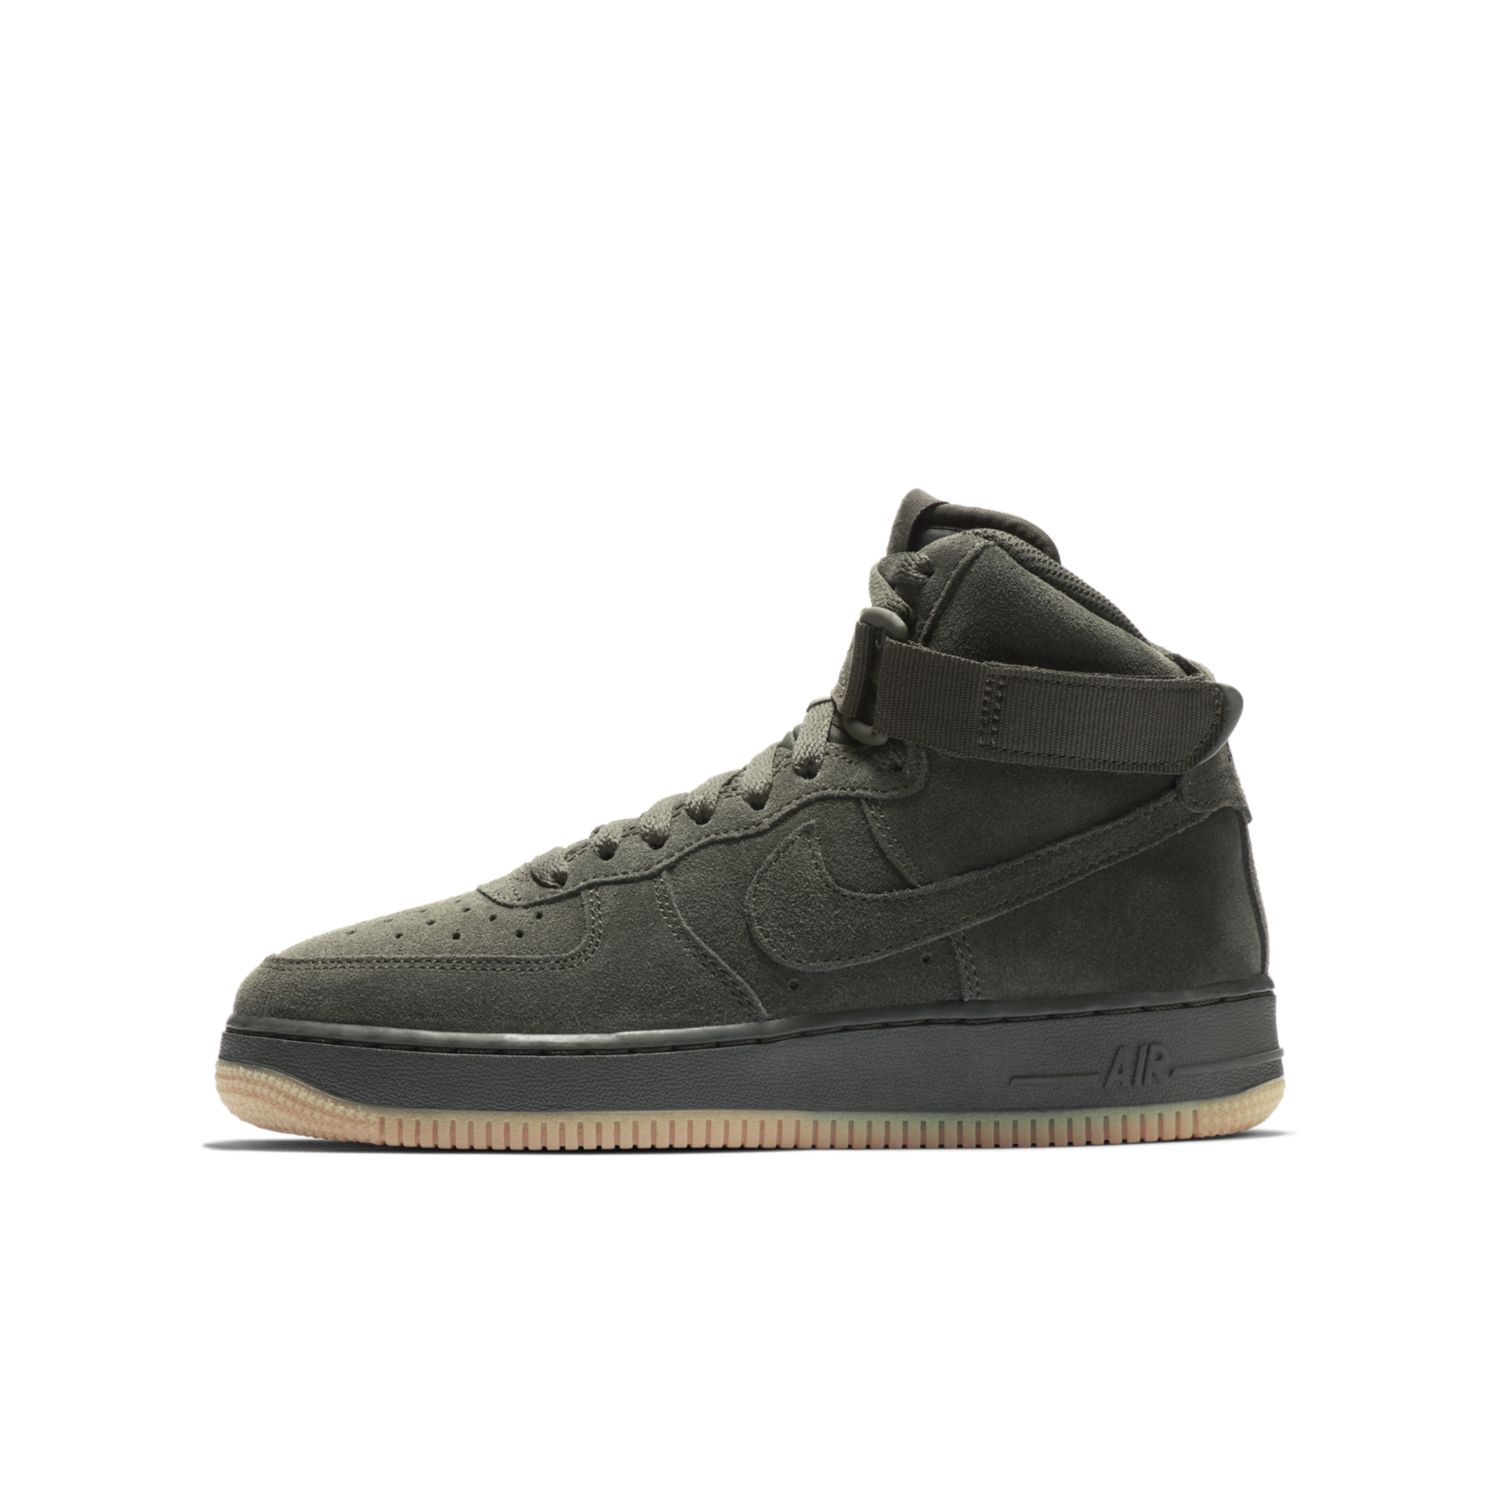 Buty Nike Air Force 1 High LV 8 GS Jr 807617 300